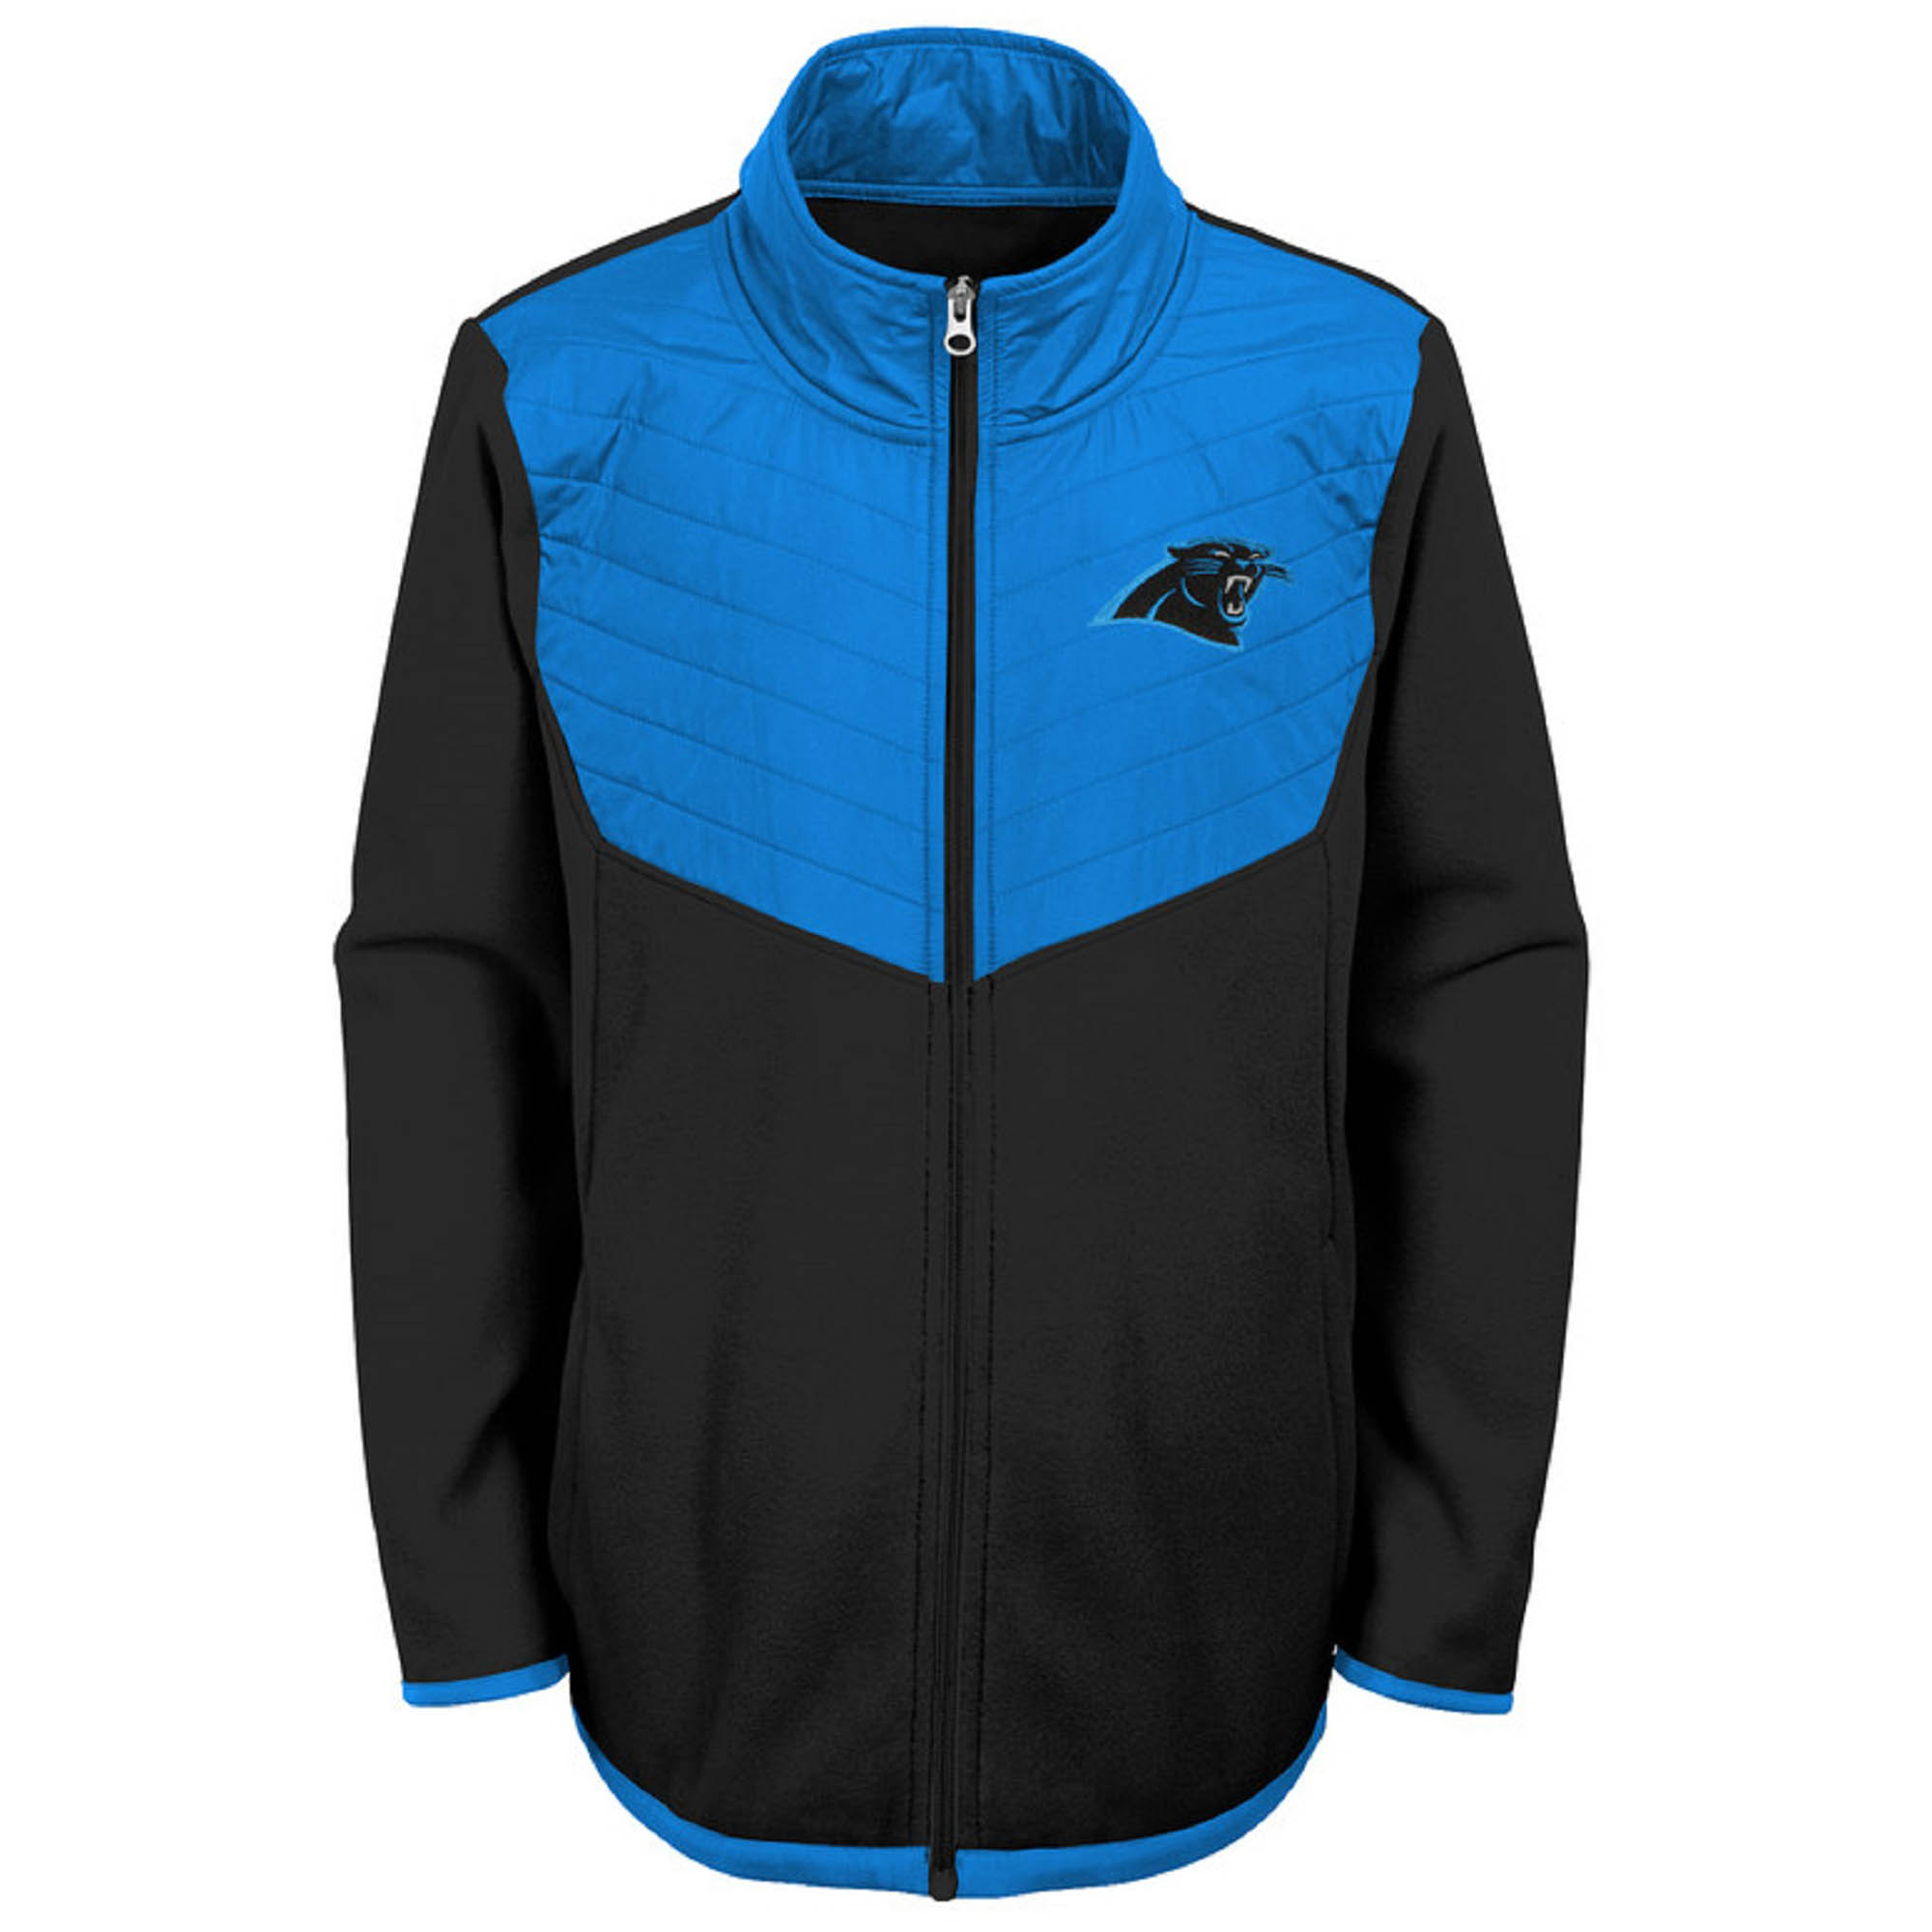 lowest price f92fe 4d243 Youth Black/Blue Carolina Panthers Polar Full-Zip Jacket ...